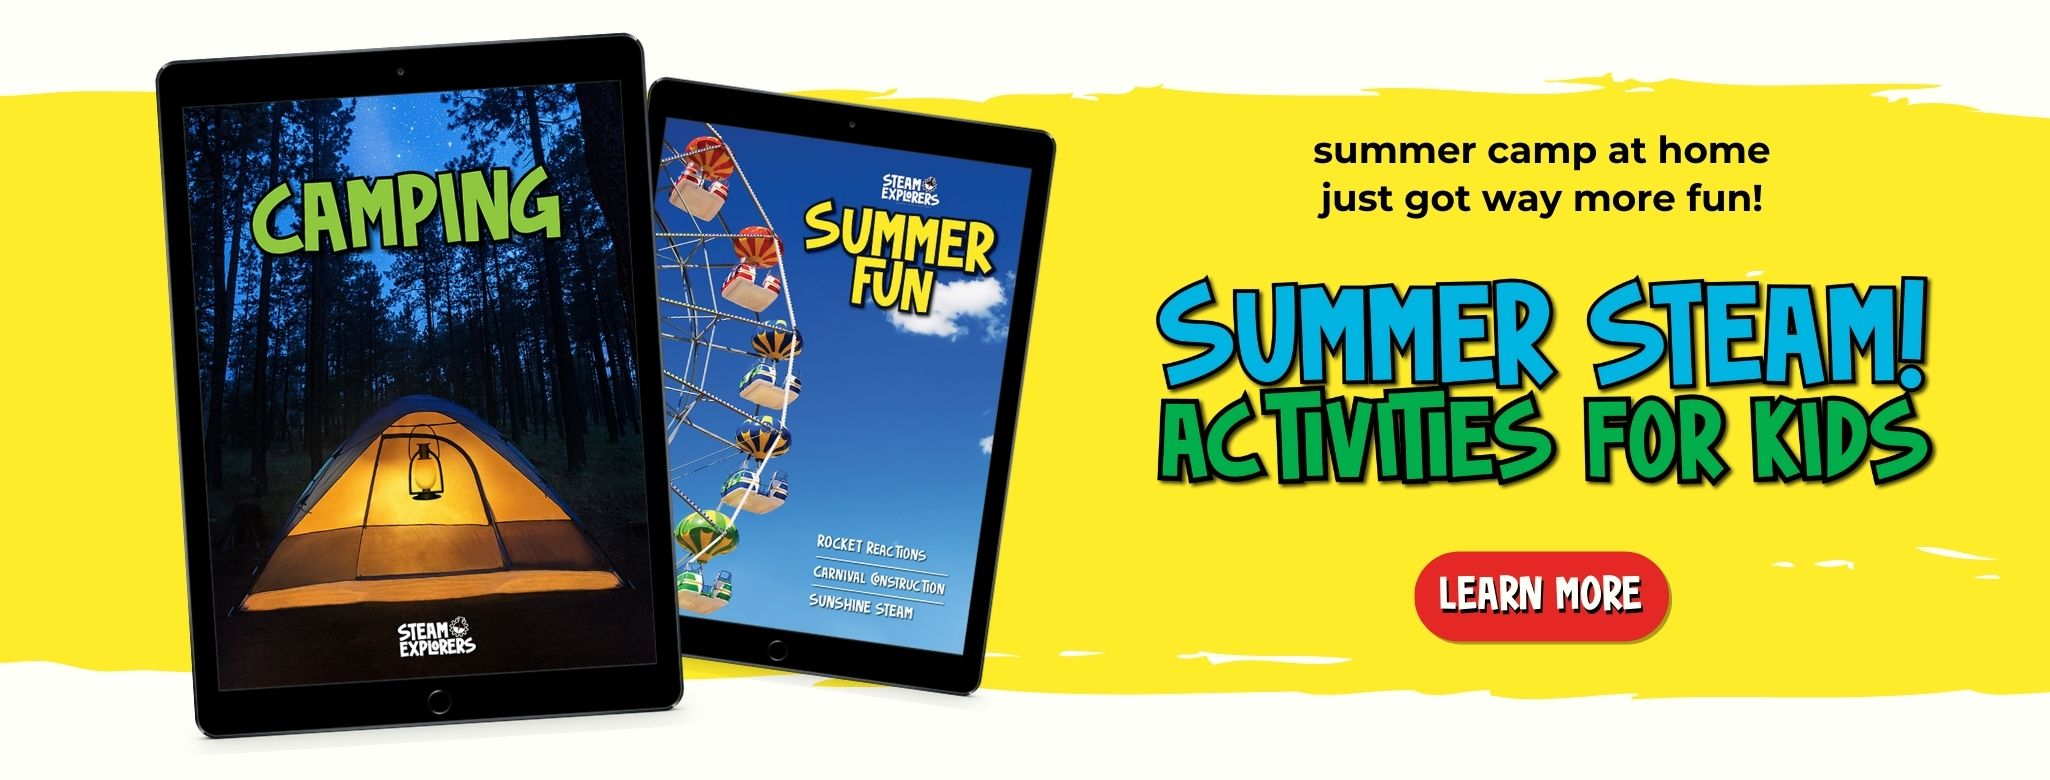 summer steam activities for kids camping and summer fun ebook ipads on yellow